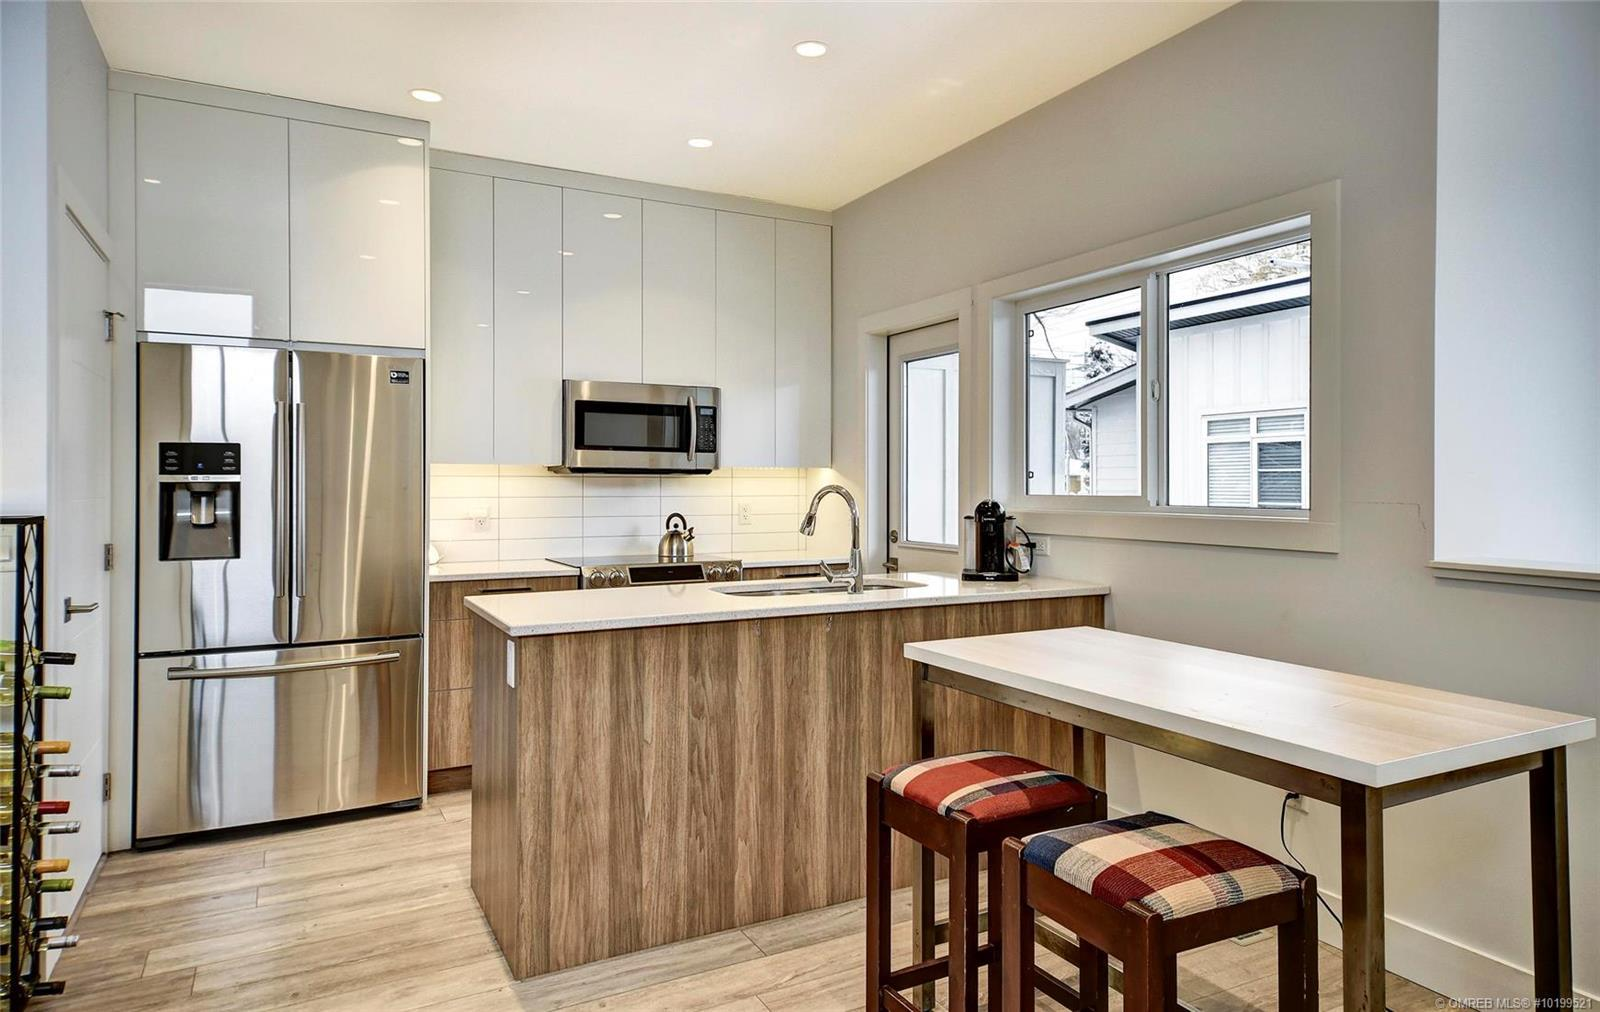 Removed: 725 Cadder Avenue, Kelowna, BC - Removed on 2020-08-08 23:18:30